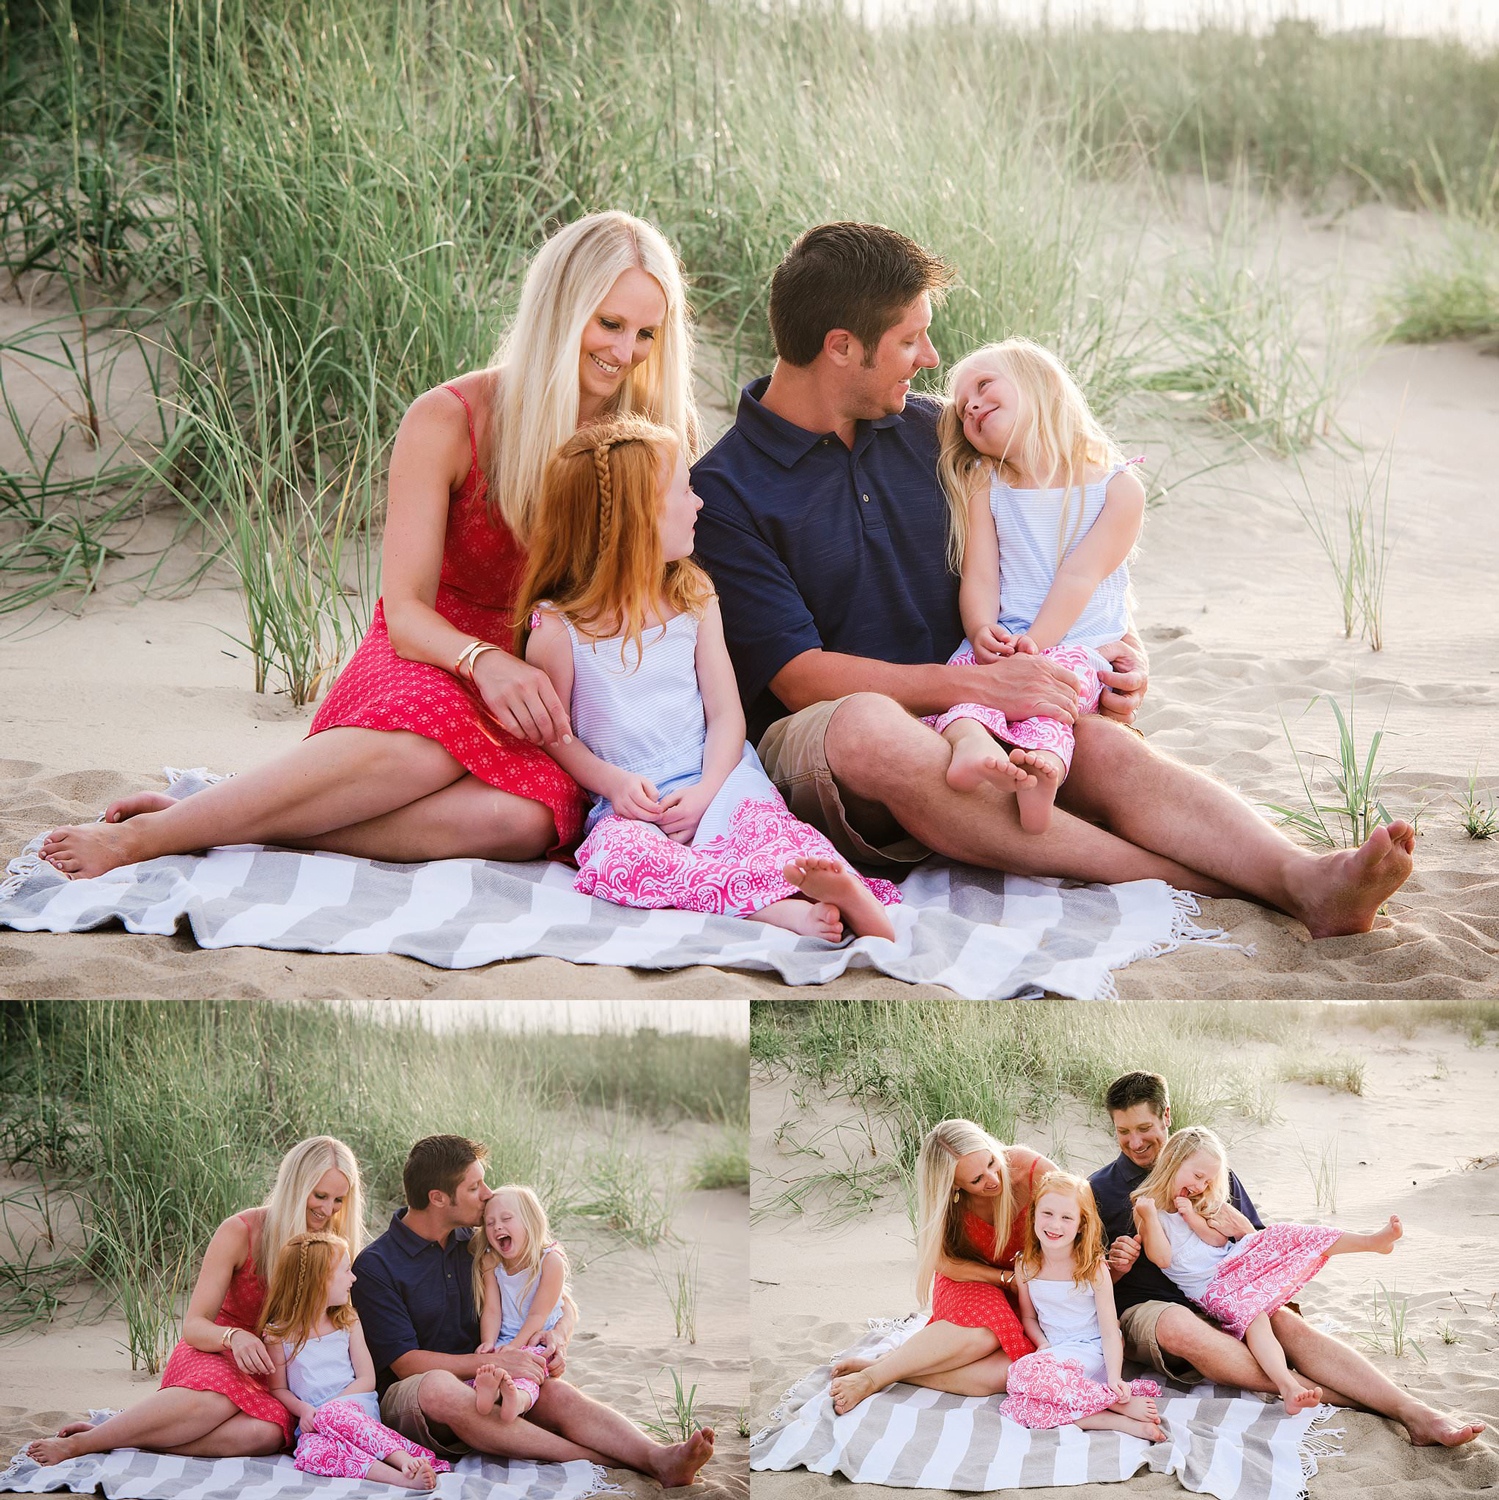 family-photo-session-virginia-beach-photographer-melissa-bliss-photography.jpg